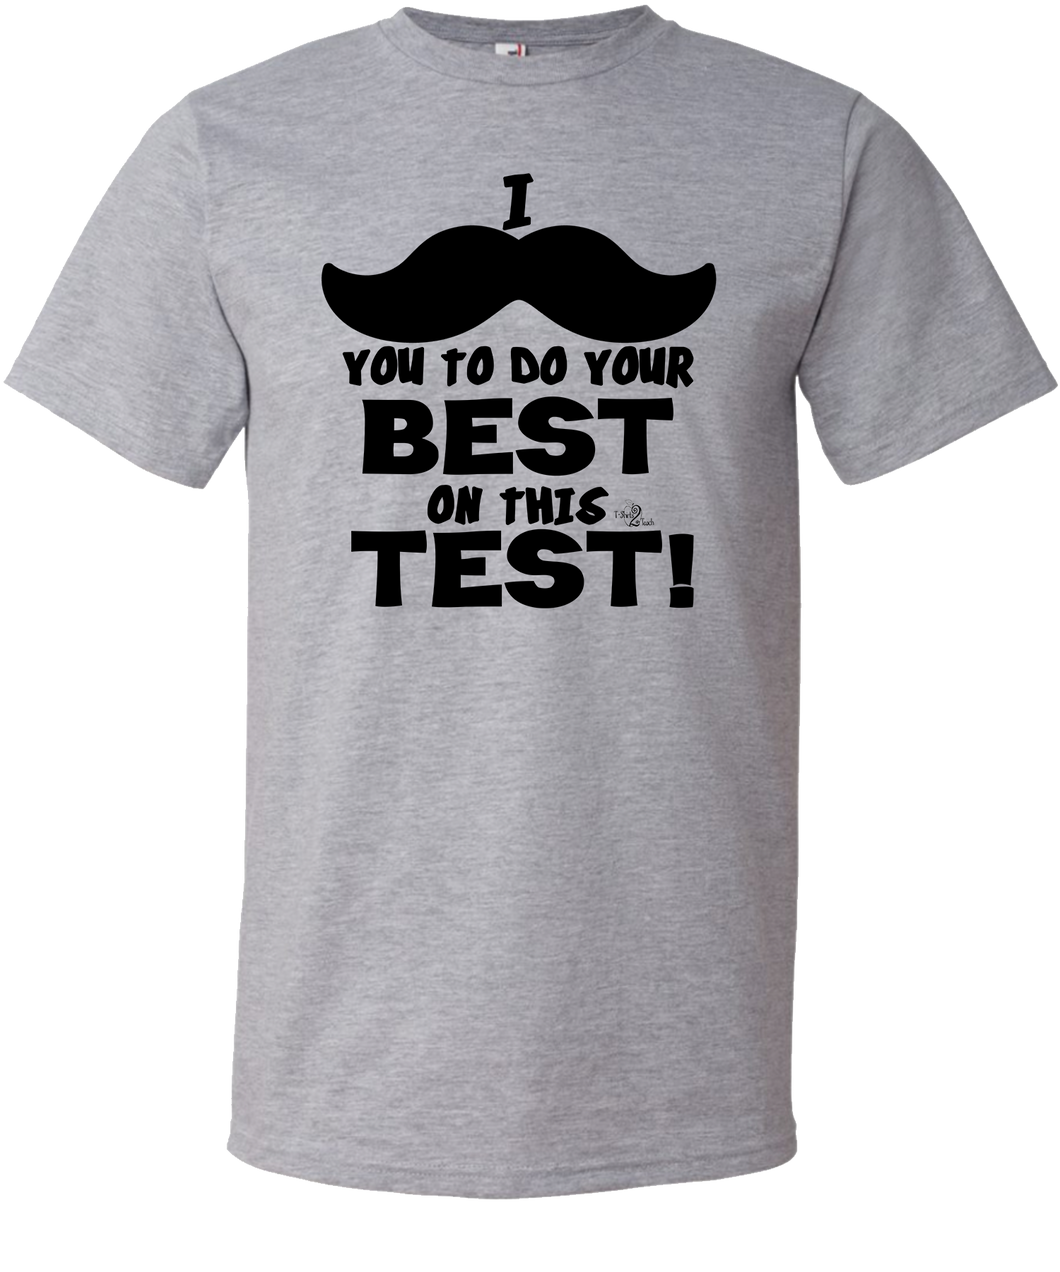 I Mustache You to Do Your Best Testing Tee